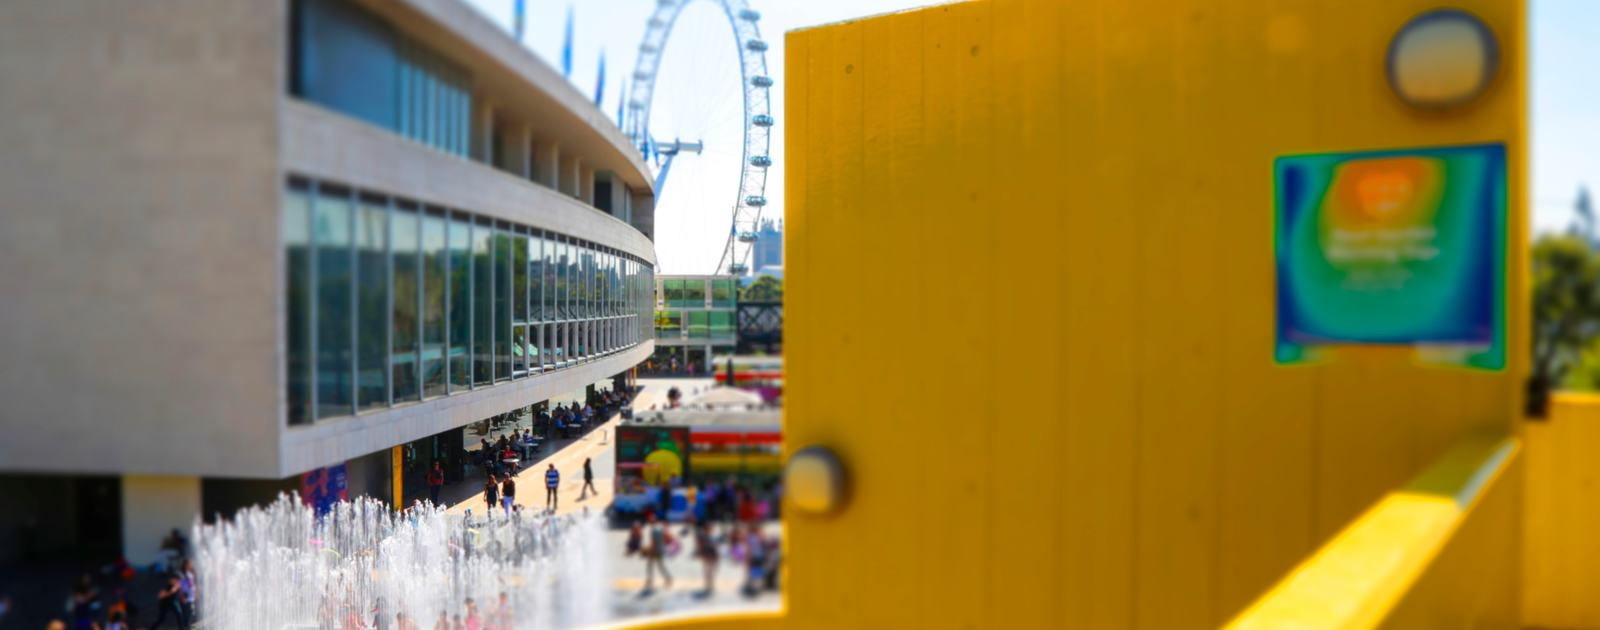 SOUTHBANK CENTRE AERIAL TILT SHIFT VIEWS BY INDIA ROPER-EVANS_50